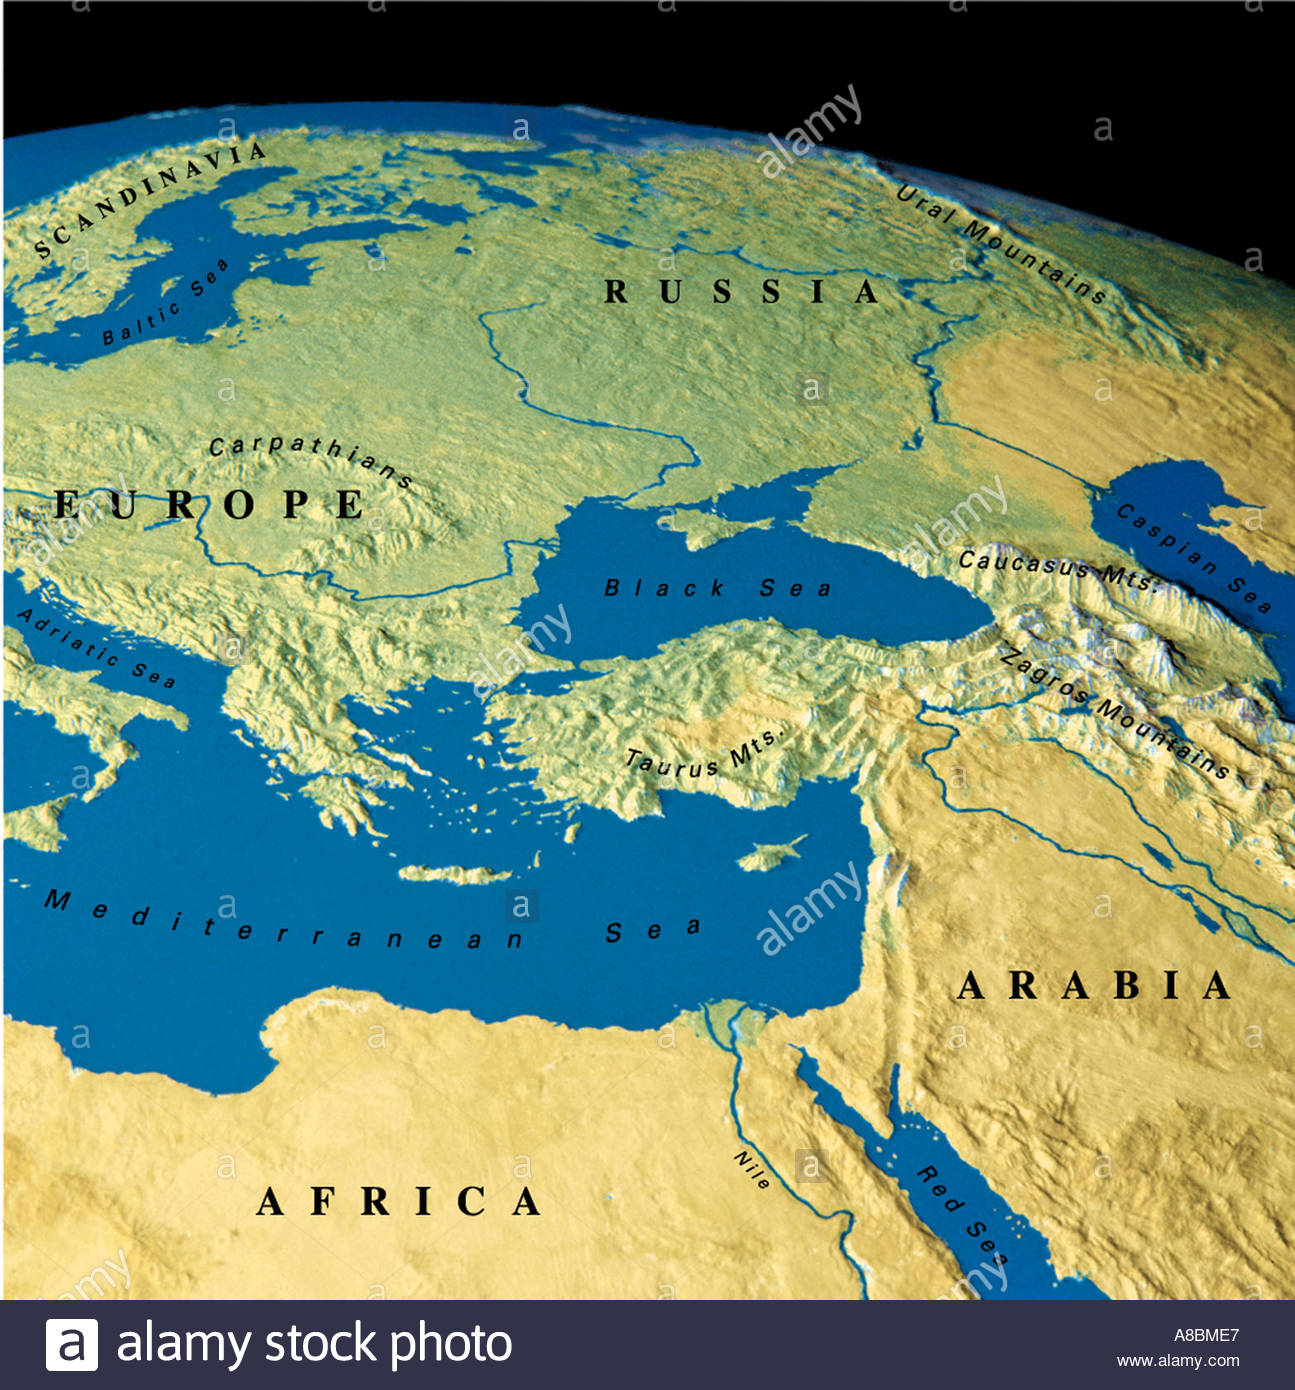 globe map maps Europe Africa Middle East Stock Photo: 3934438 - Alamy